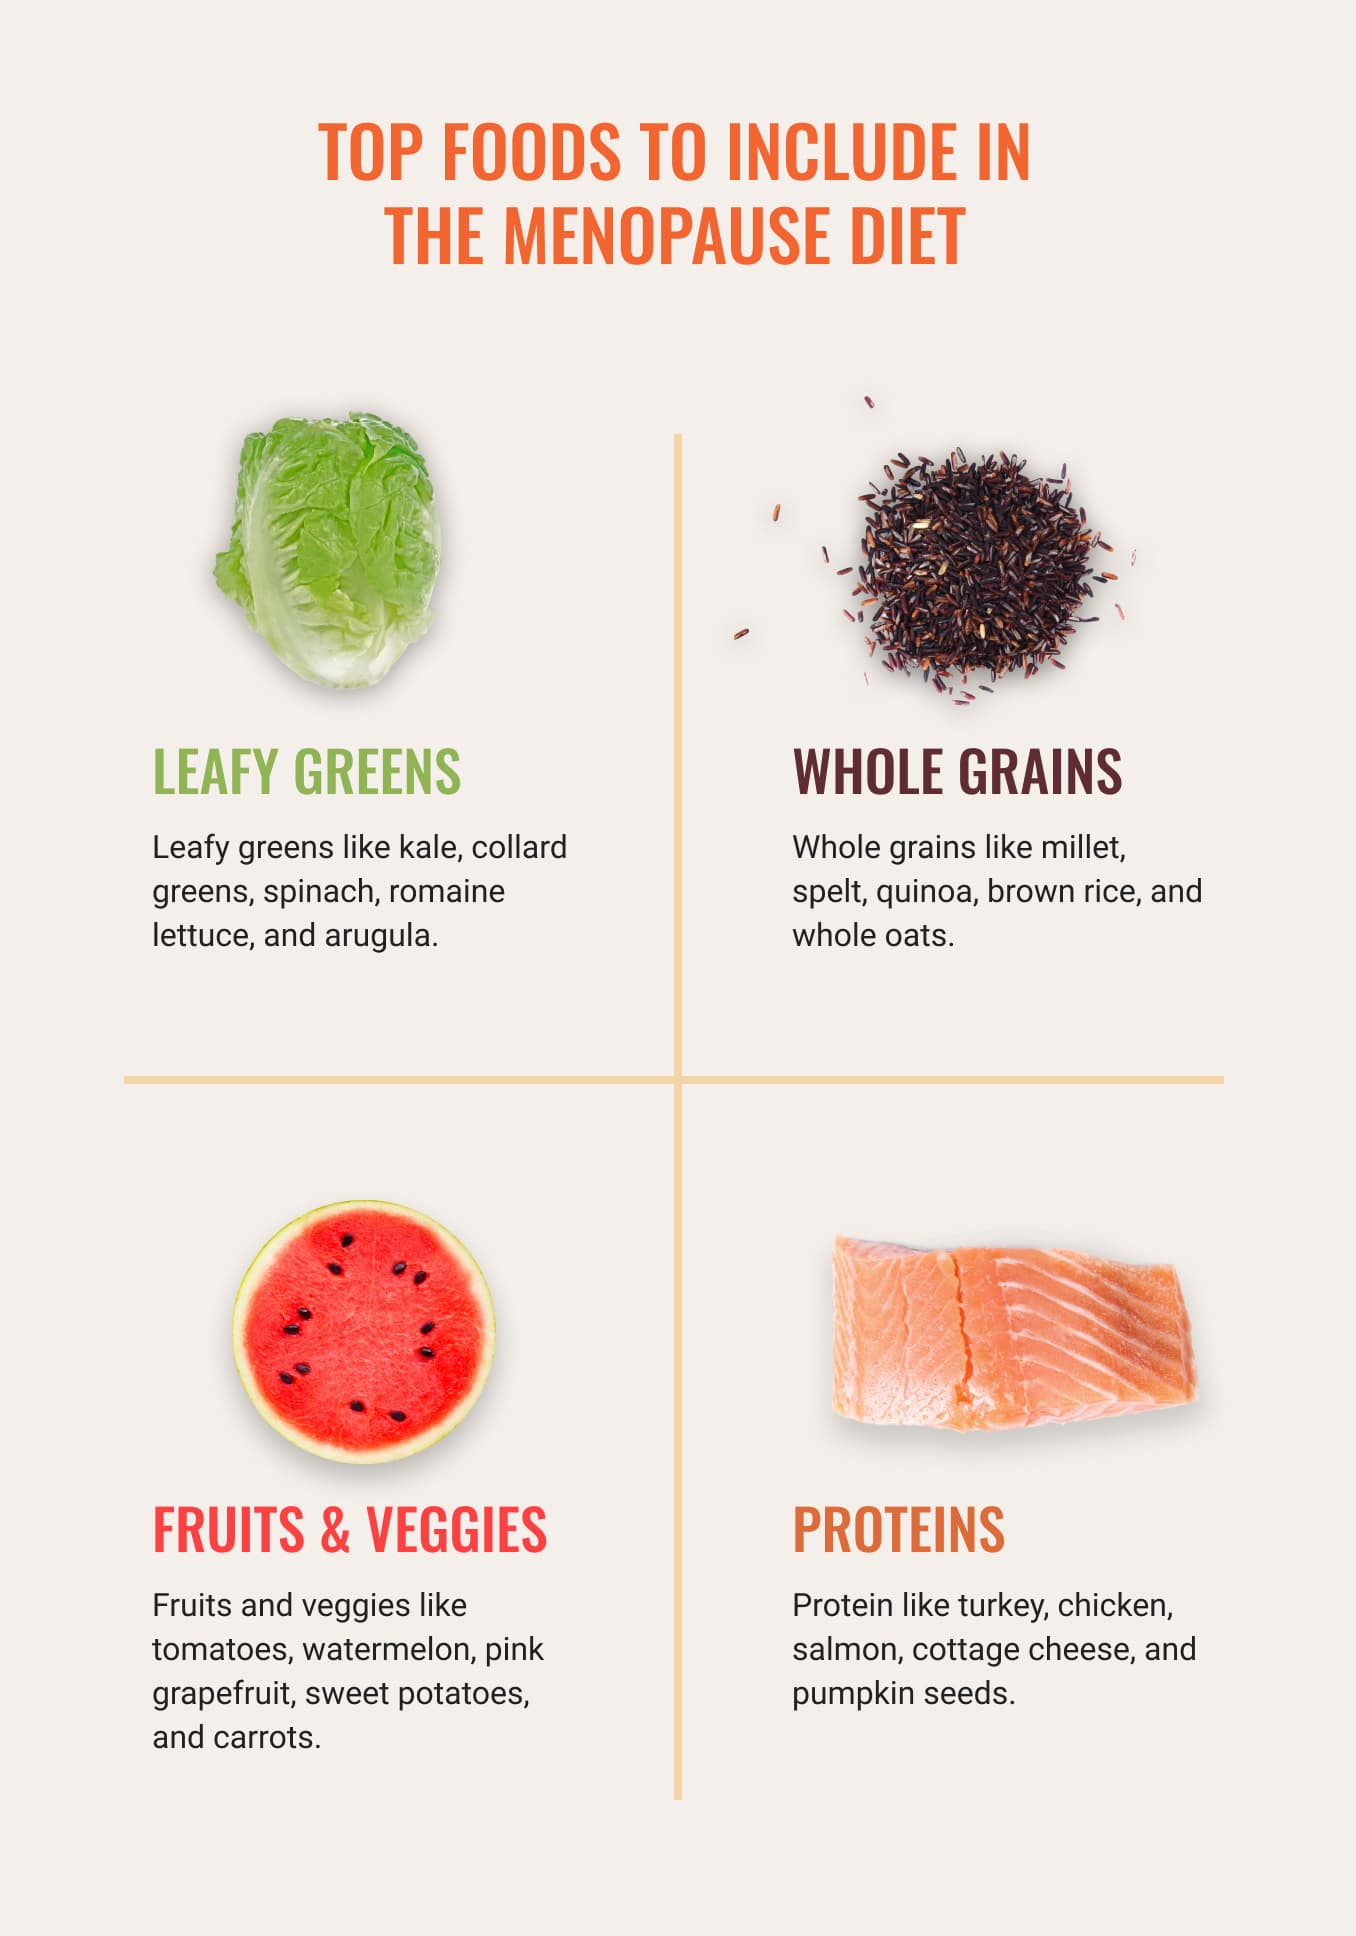 Top Foods to Include in The Menopause Diet